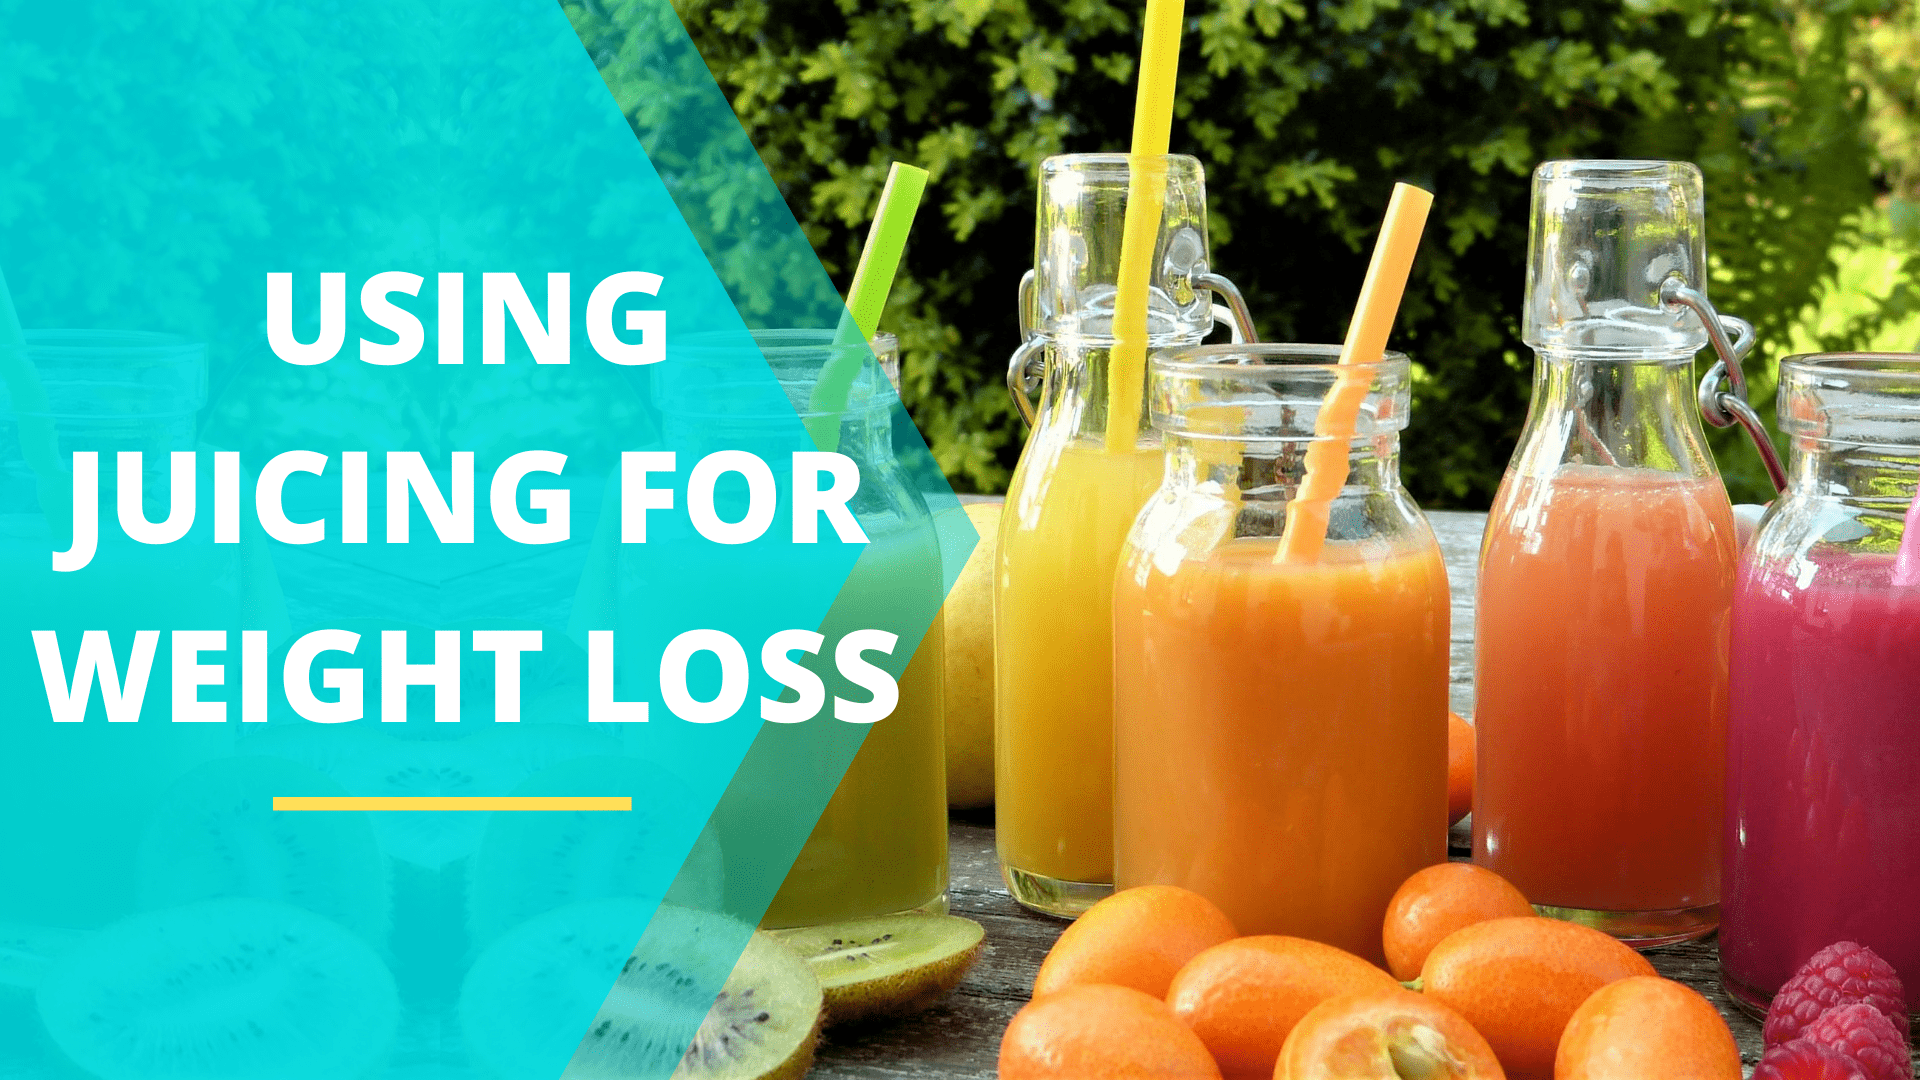 Using Juicing For Weight Loss